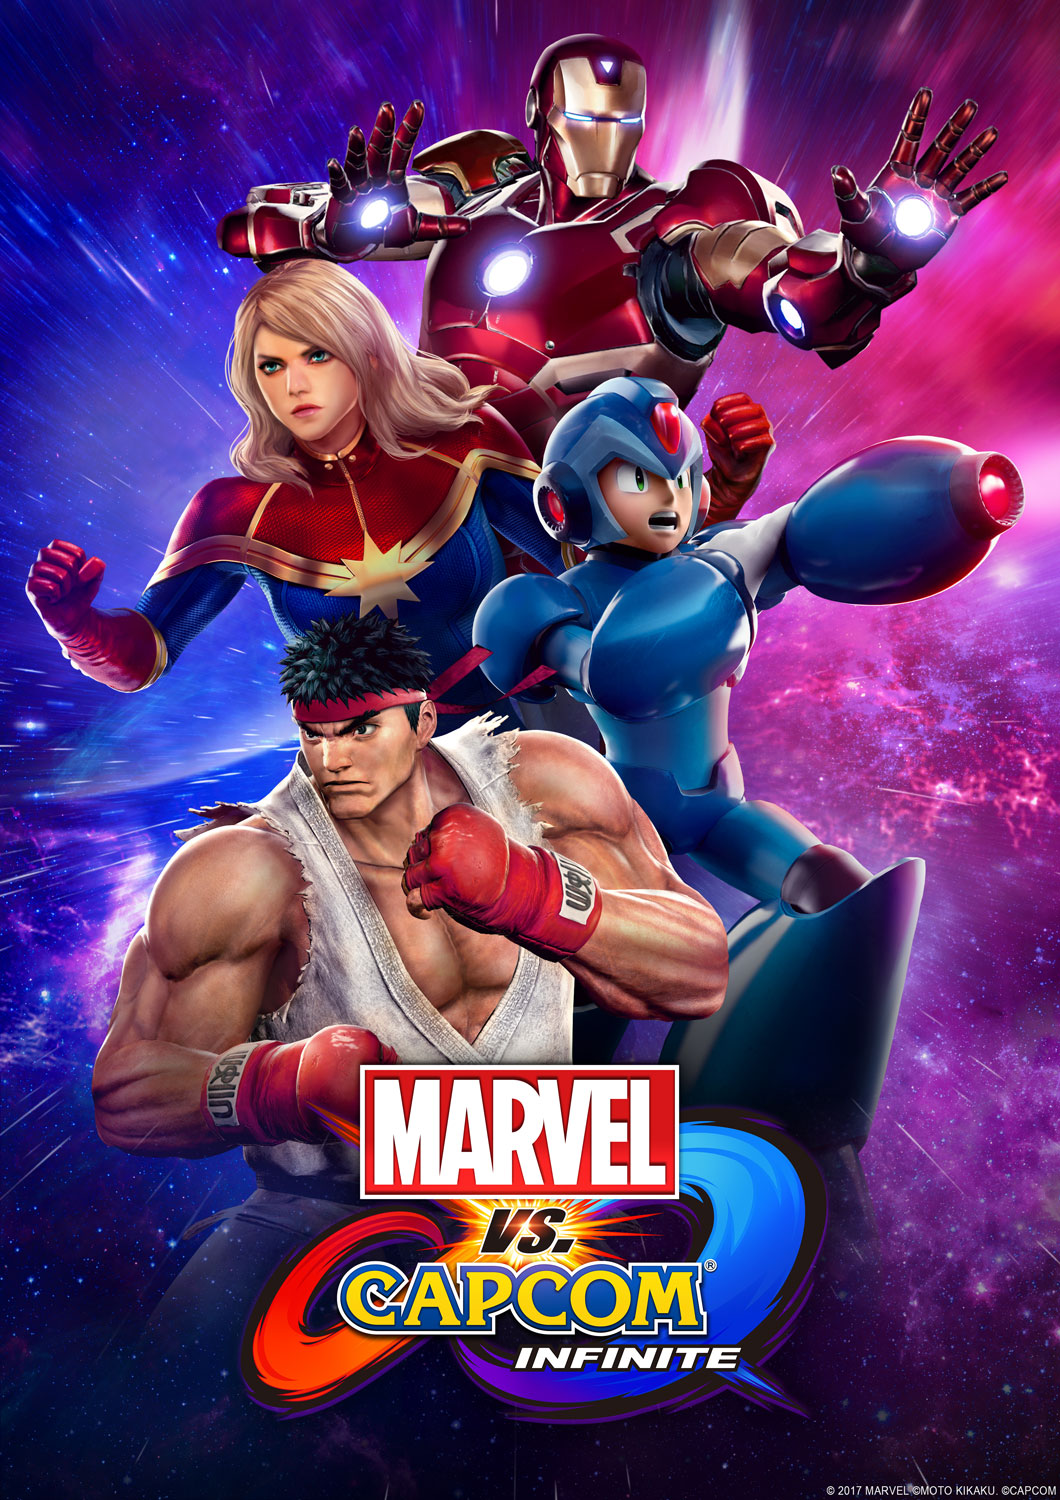 Poster for Marvel vs. Capcom: Infinite